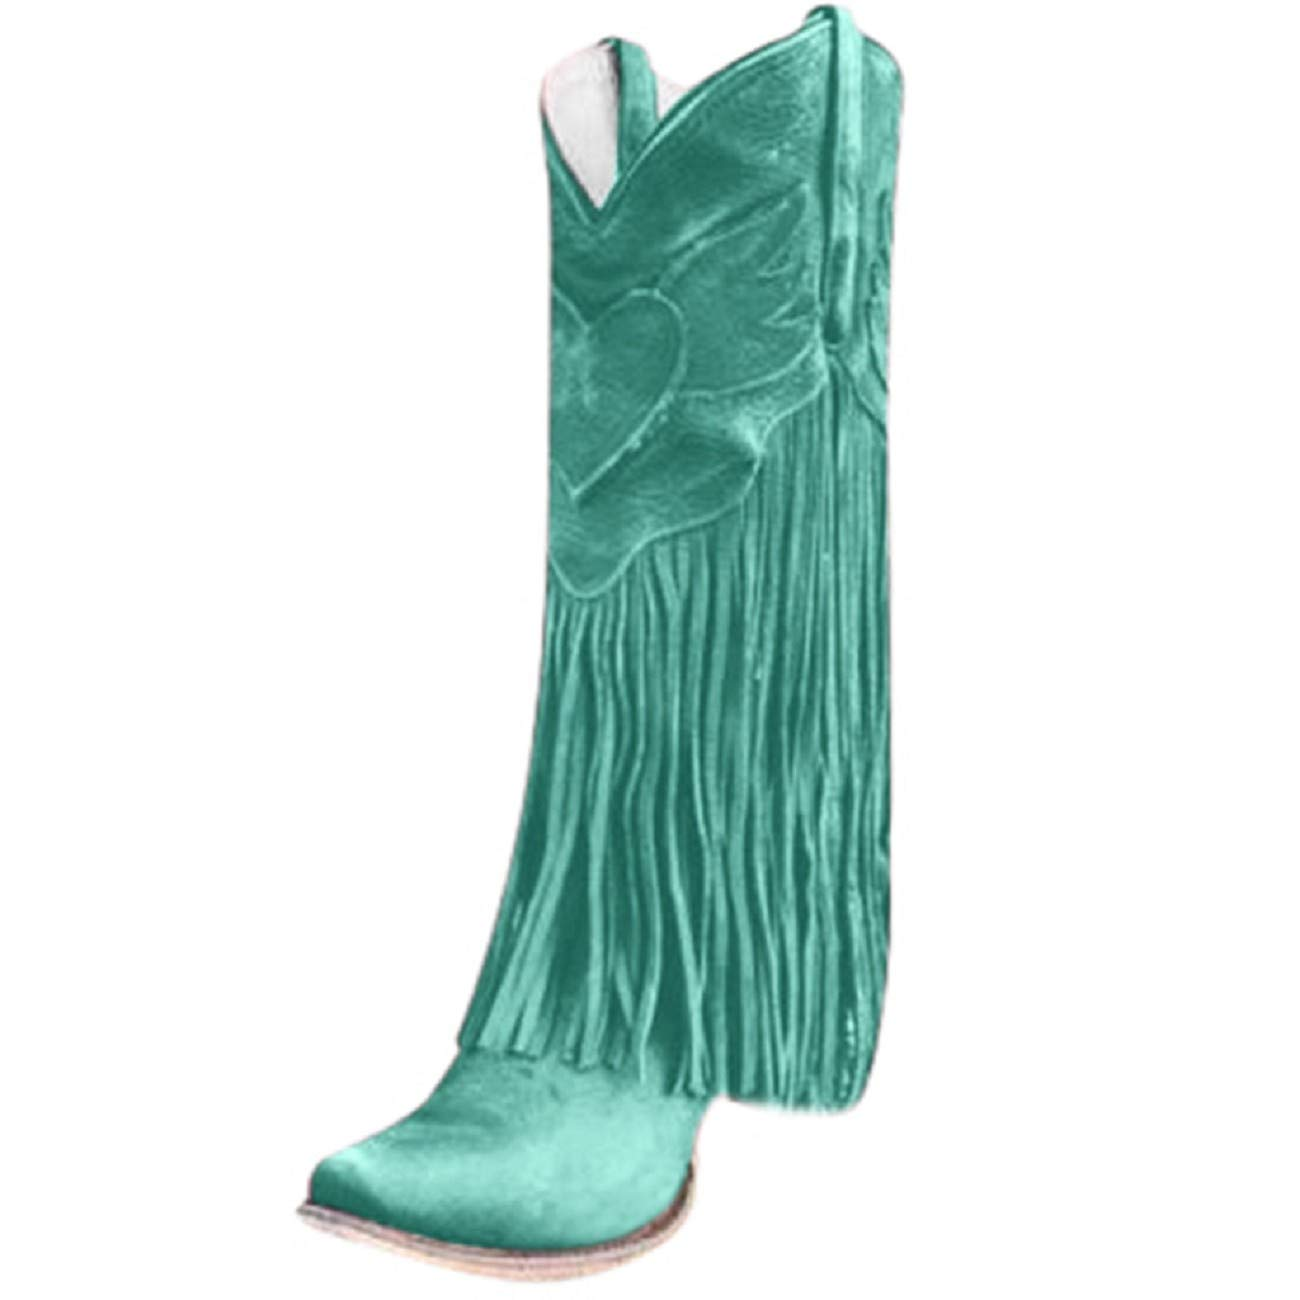 Tsmile Women Pull Up Tabs Boots Stylish Tassel Pointed Toe Stacked Low Heel Shoes Fringe Cowgirl Western Booties Green by Tsmile Winter